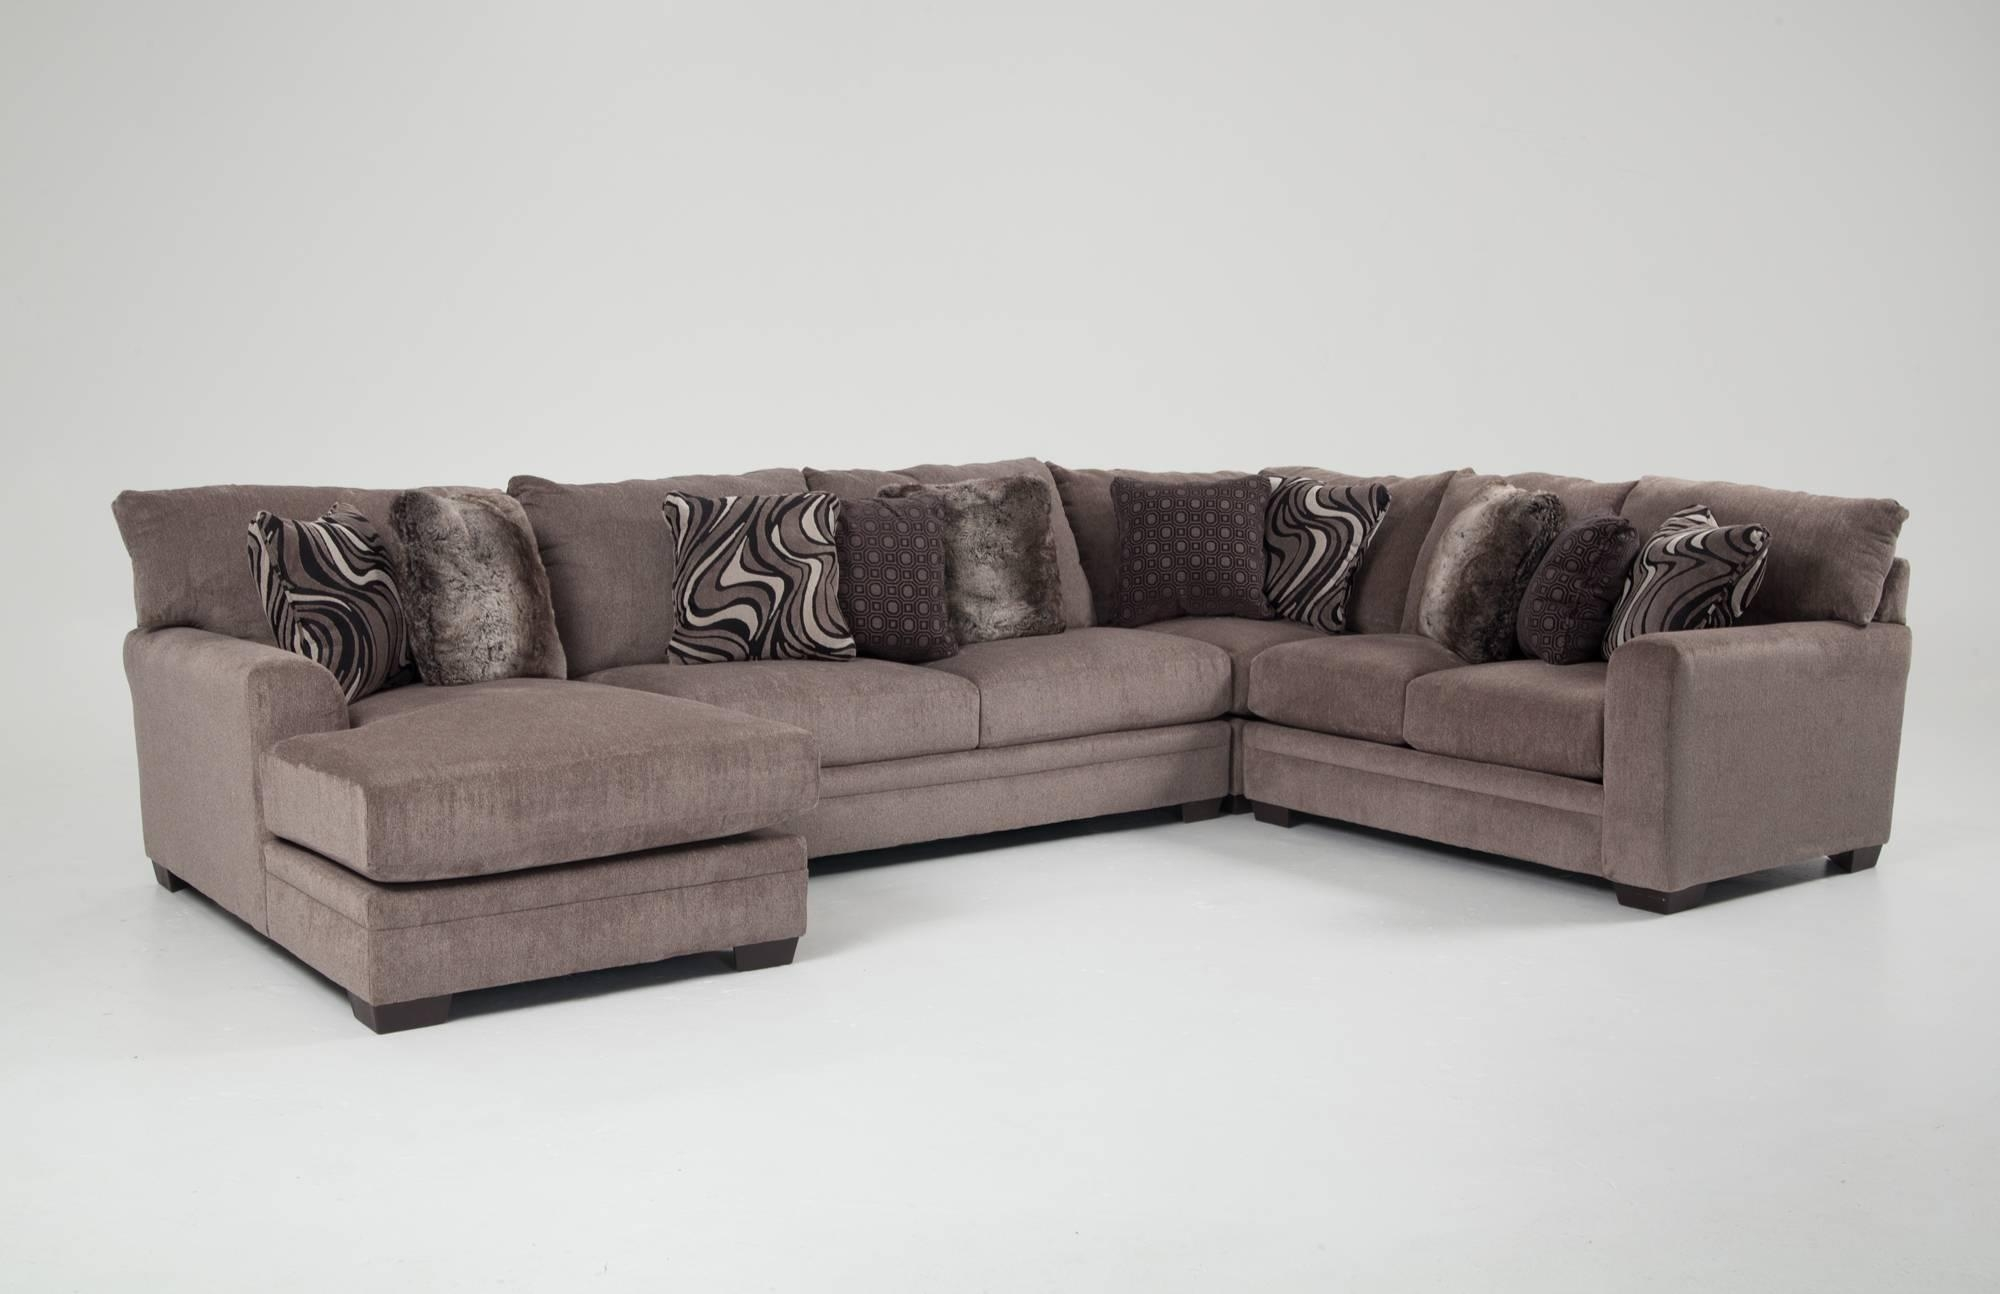 Luxe 2 Piece Sectional With Cuddler | Bob's Discount Furniture With Sectional Cuddler (View 13 of 20)